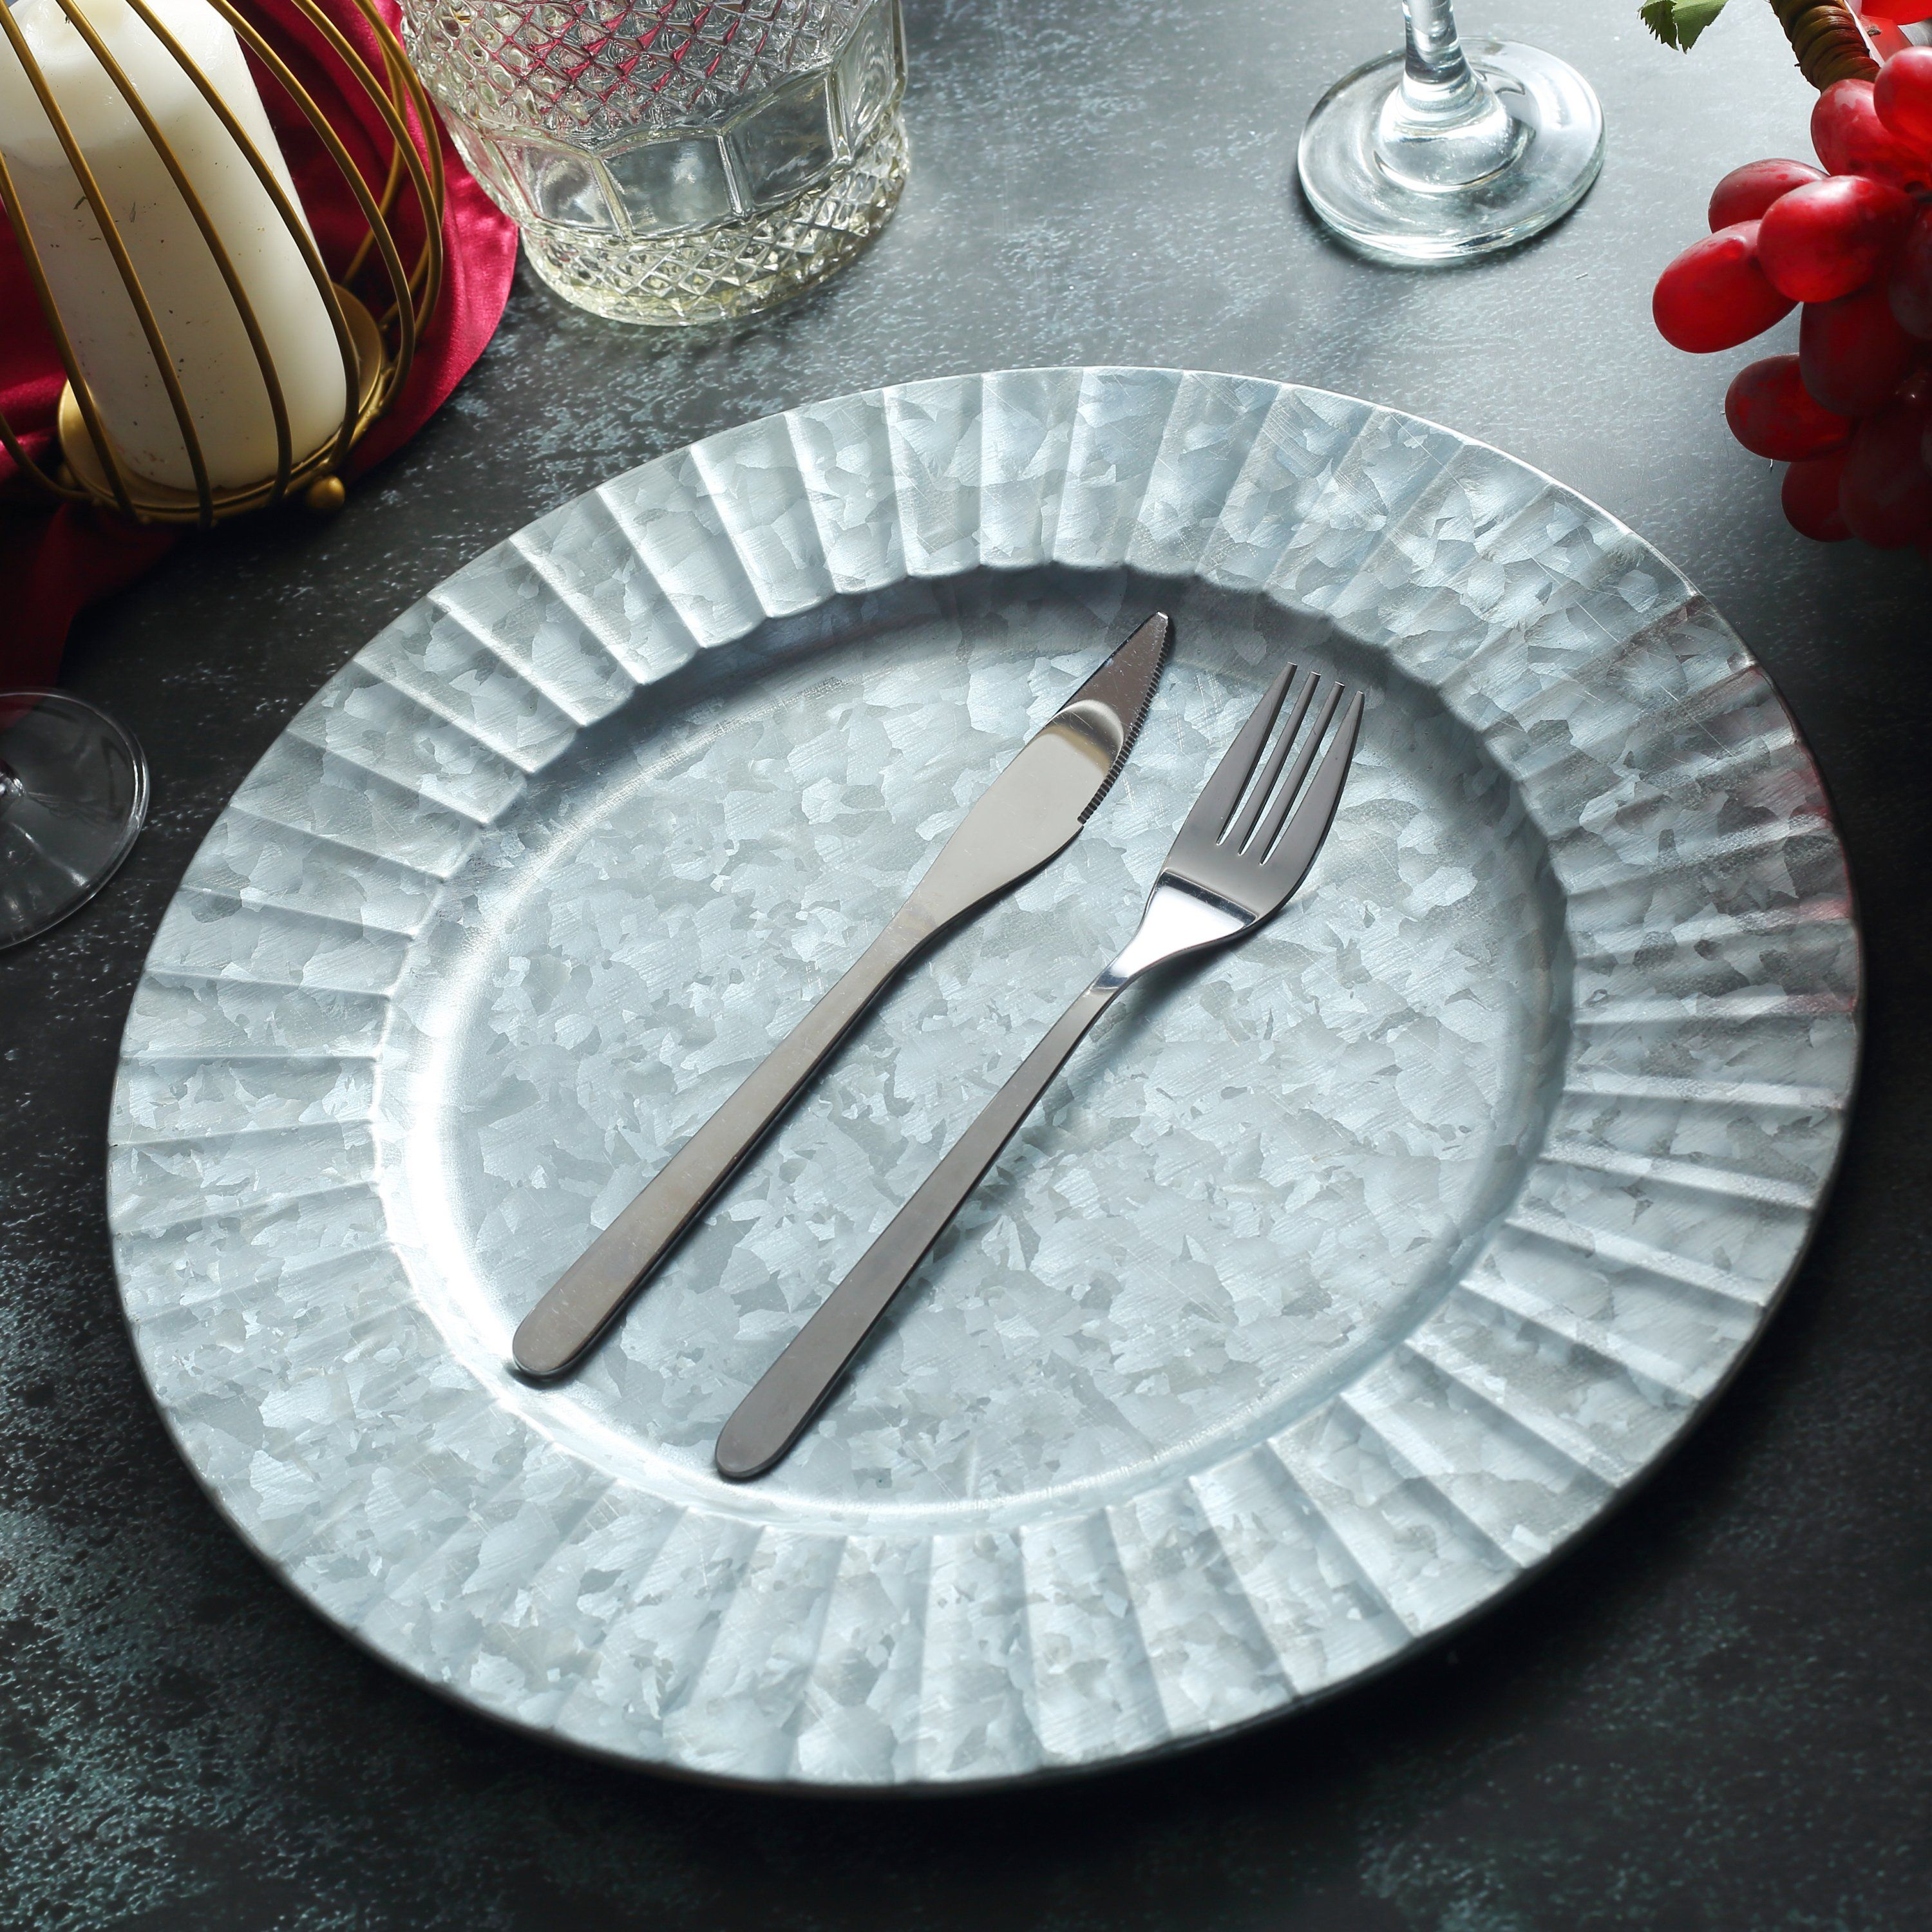 A Simple Summer Table Setup In Scandinavian Style In 2020 Charger Plates Traditional Dinnerware Galvanized Metal